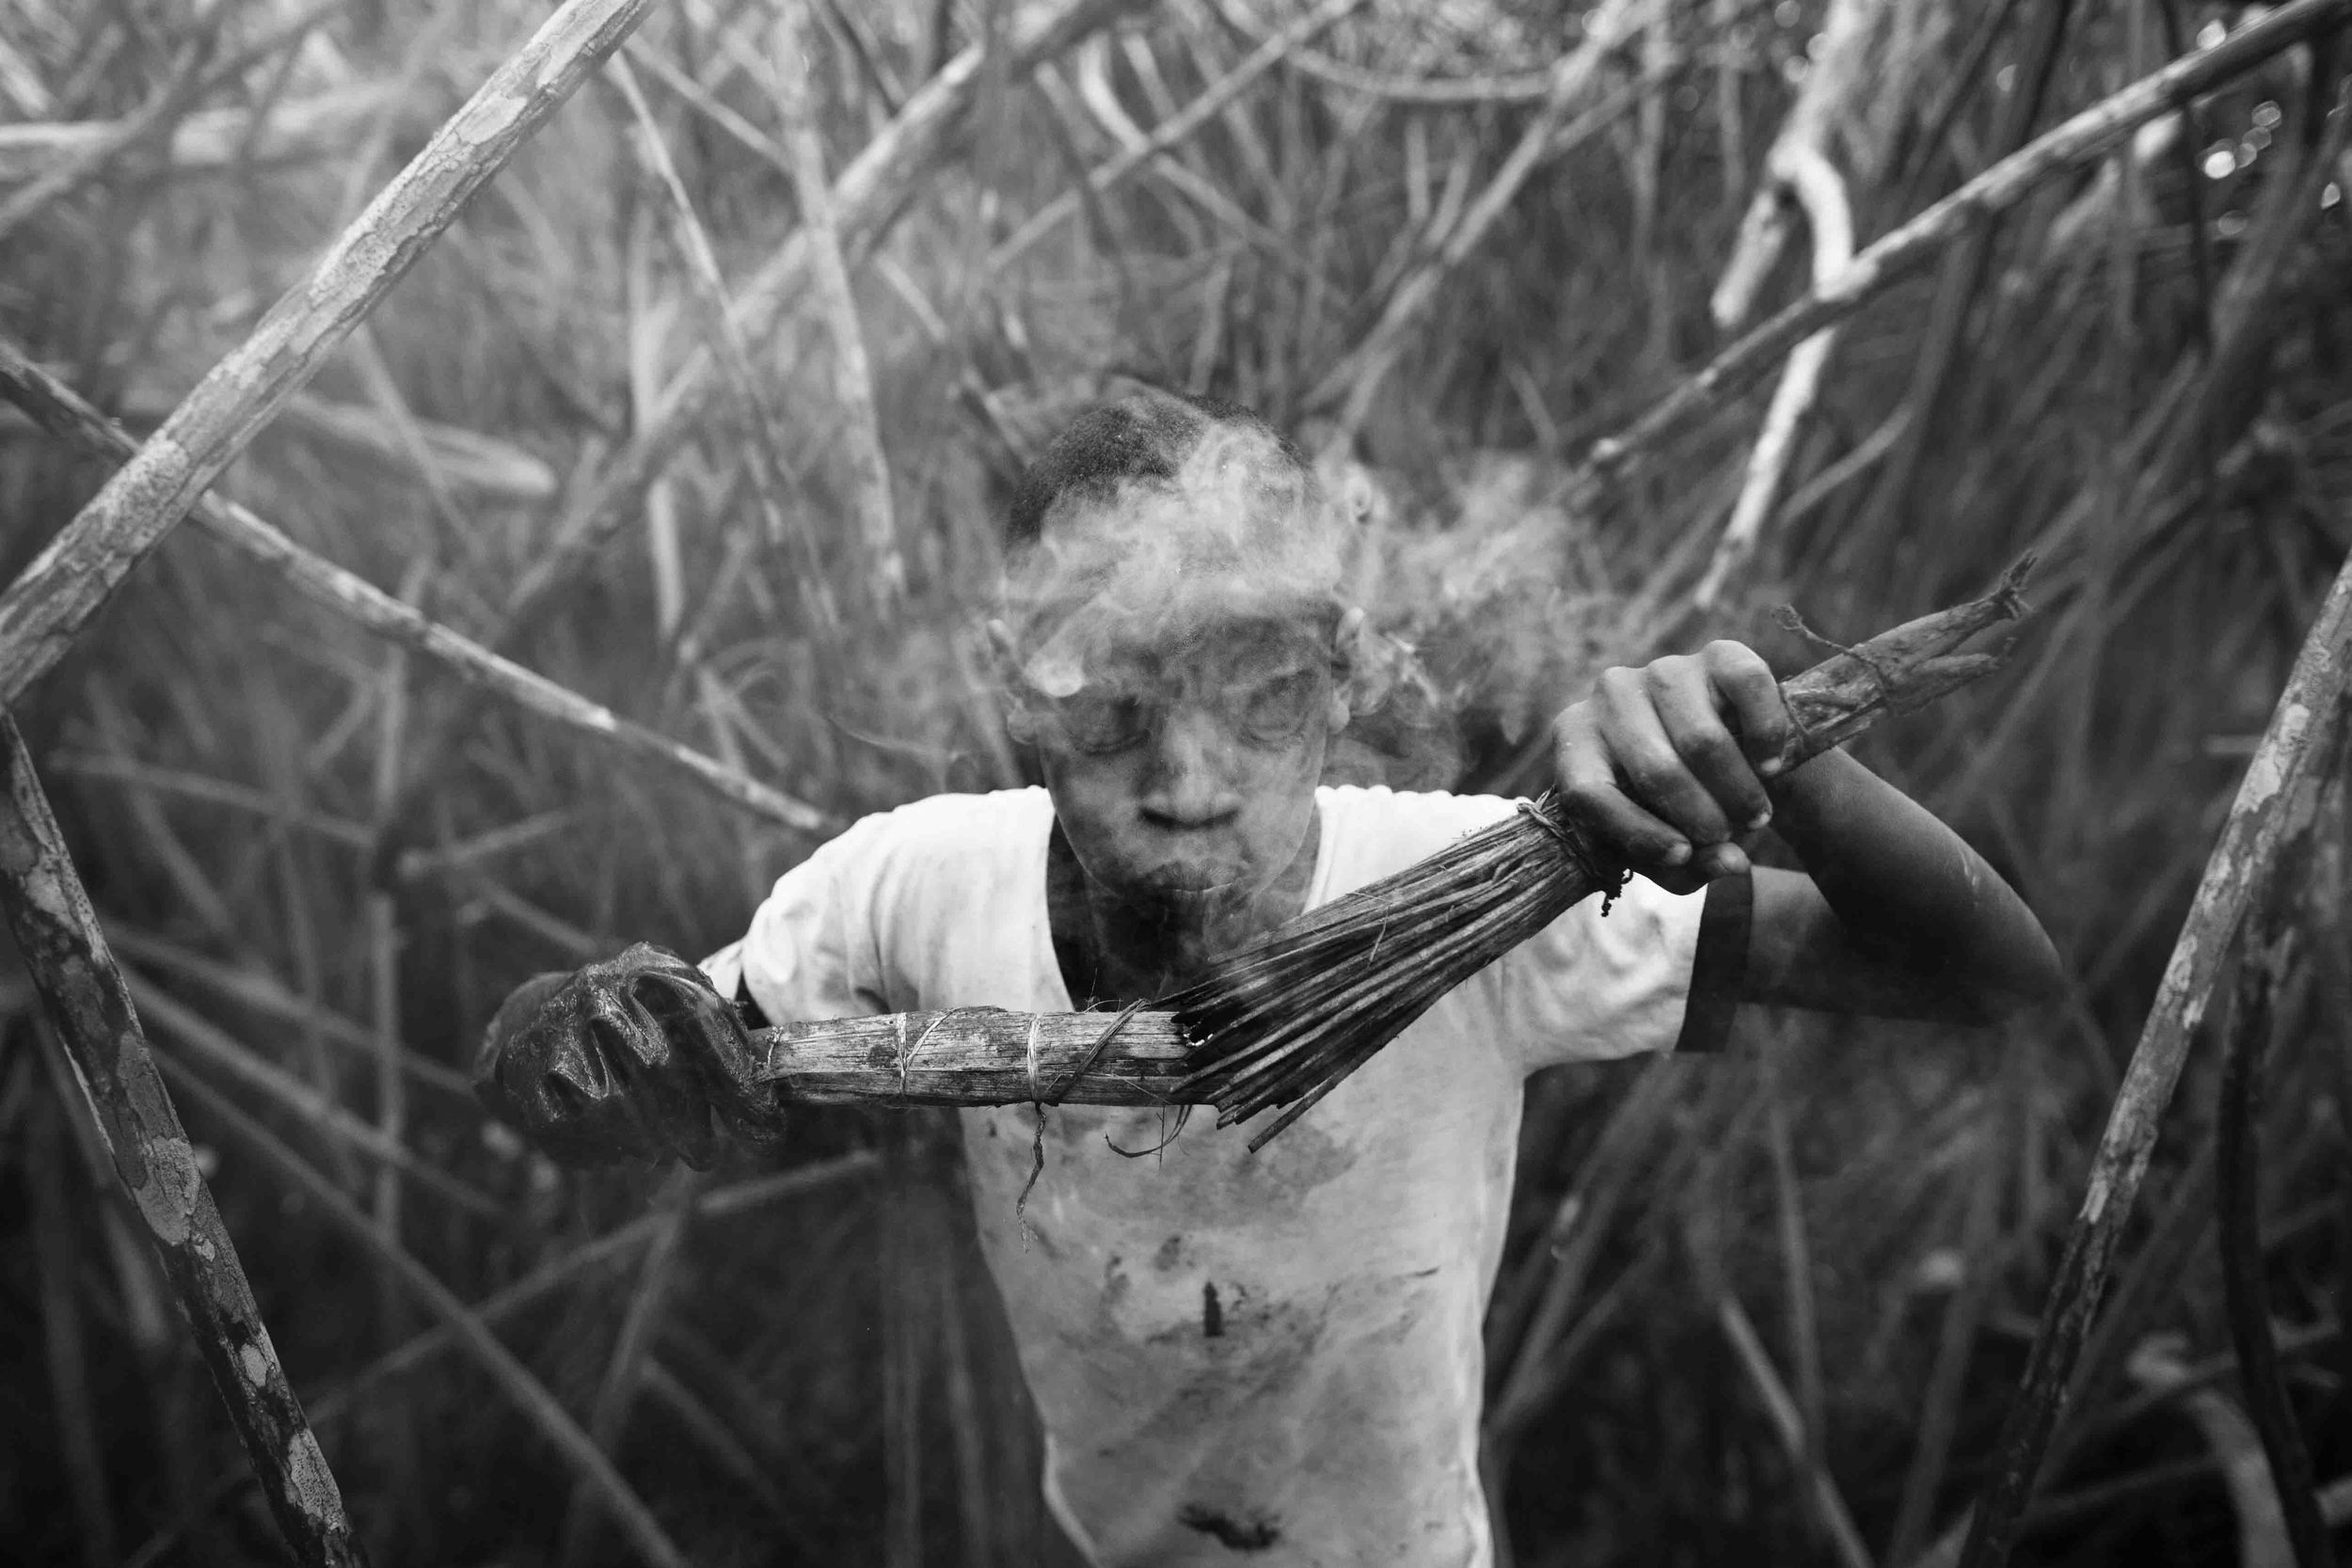 Jefferson Muñoz lights blows into a torch made out of coconut husks. The torches blow smoke for hours repelling the vicious mosquitoes and black flies of the mangrove. Bug spray only repels insects for a few minutes after application. 2014.